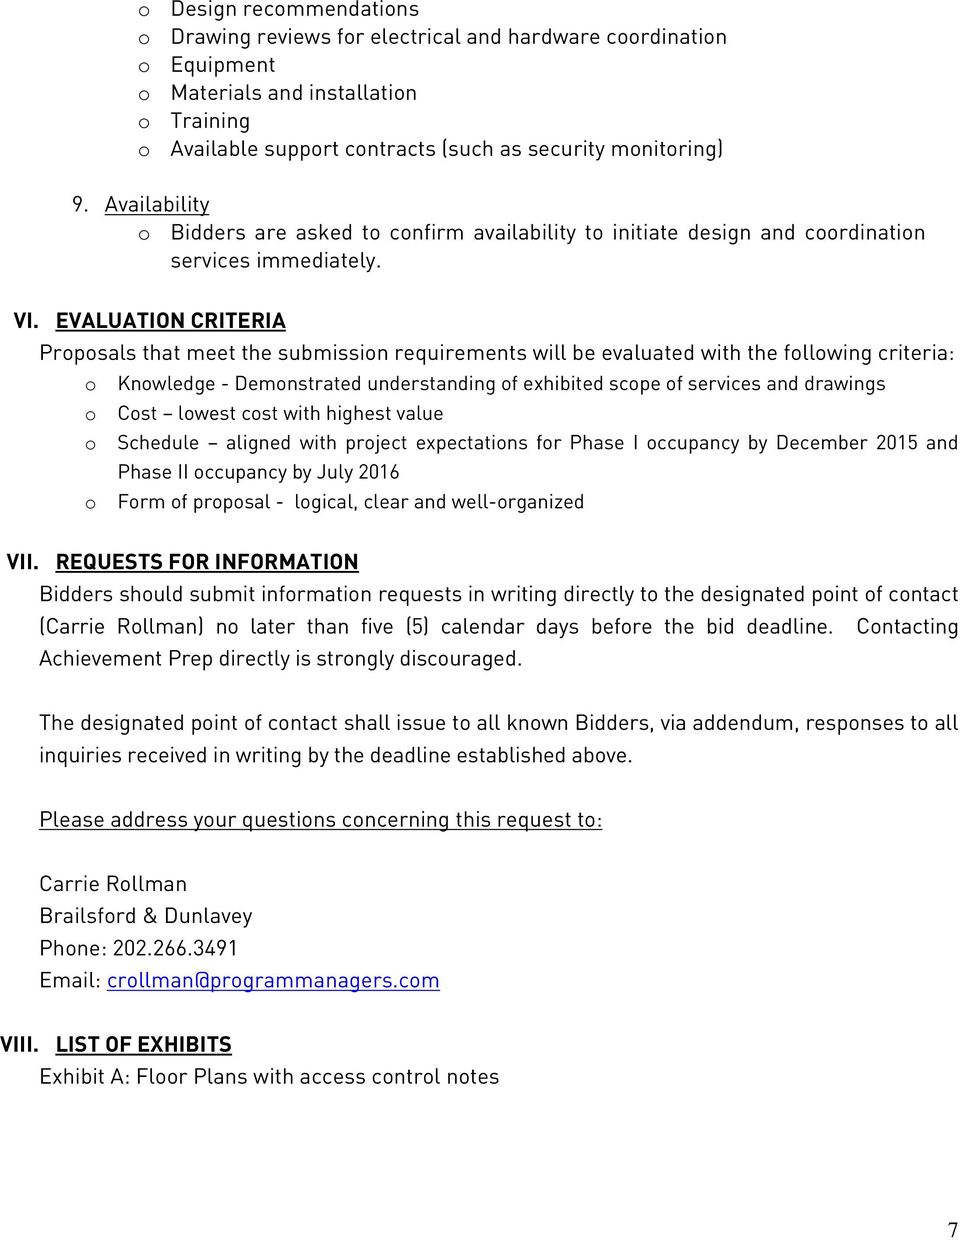 EVALUATION CRITERIA Proposals that meet the submission requirements will be evaluated with the following criteria: o Knowledge - Demonstrated understanding of exhibited scope of services and drawings